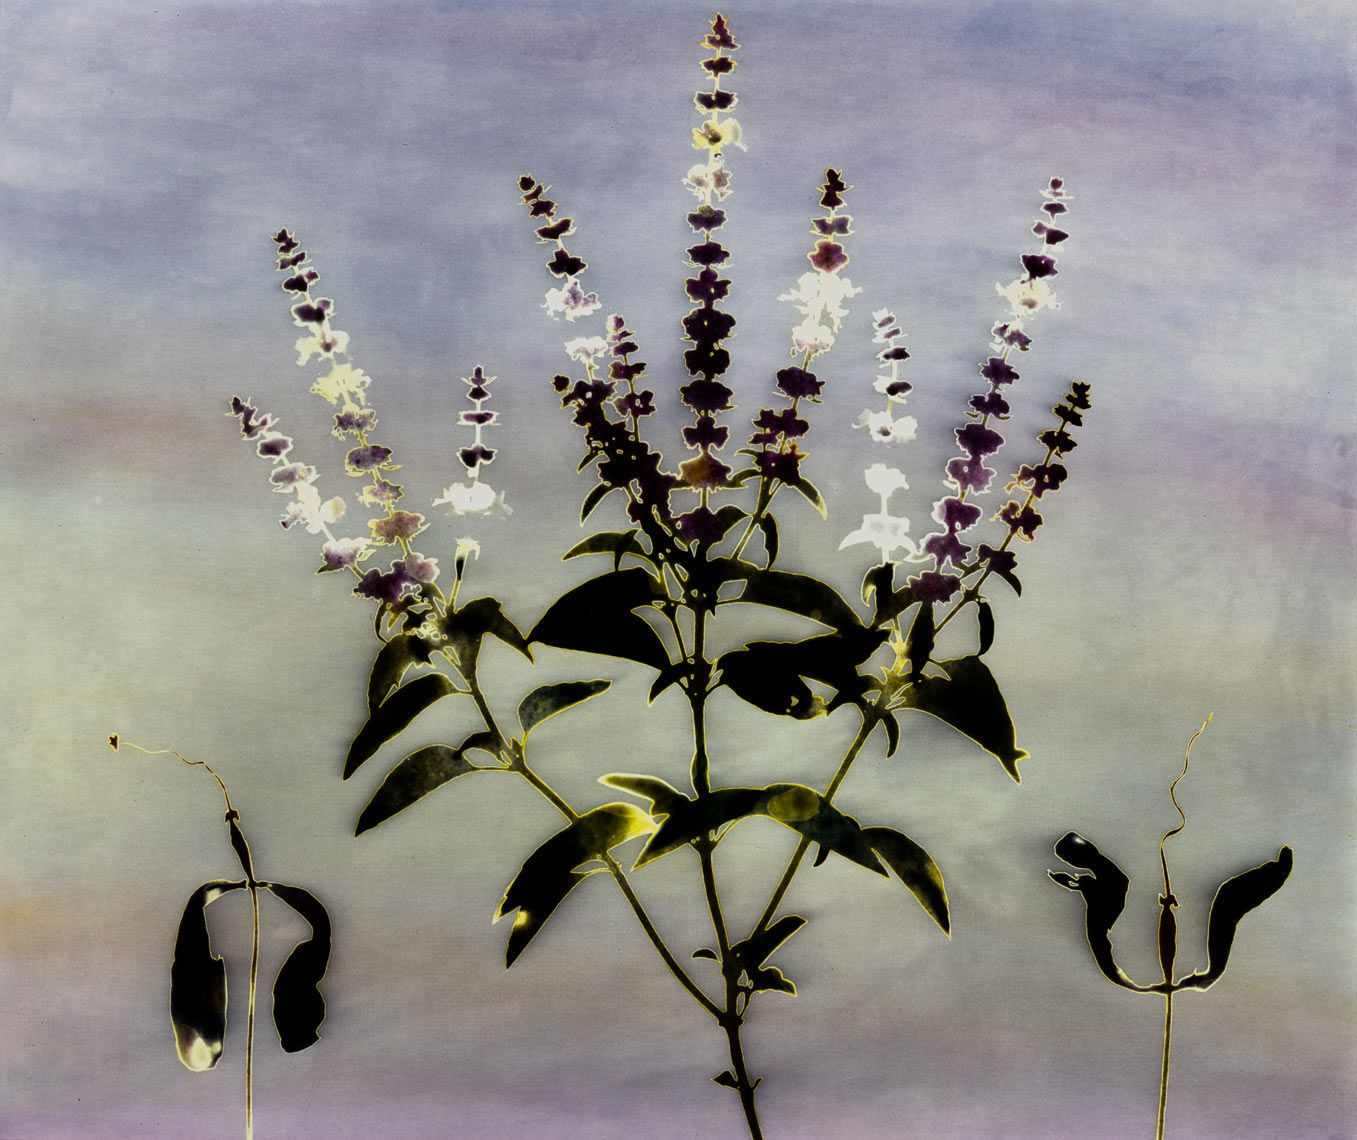 David Lebe; Garden 3, 1979, hand colored photogram